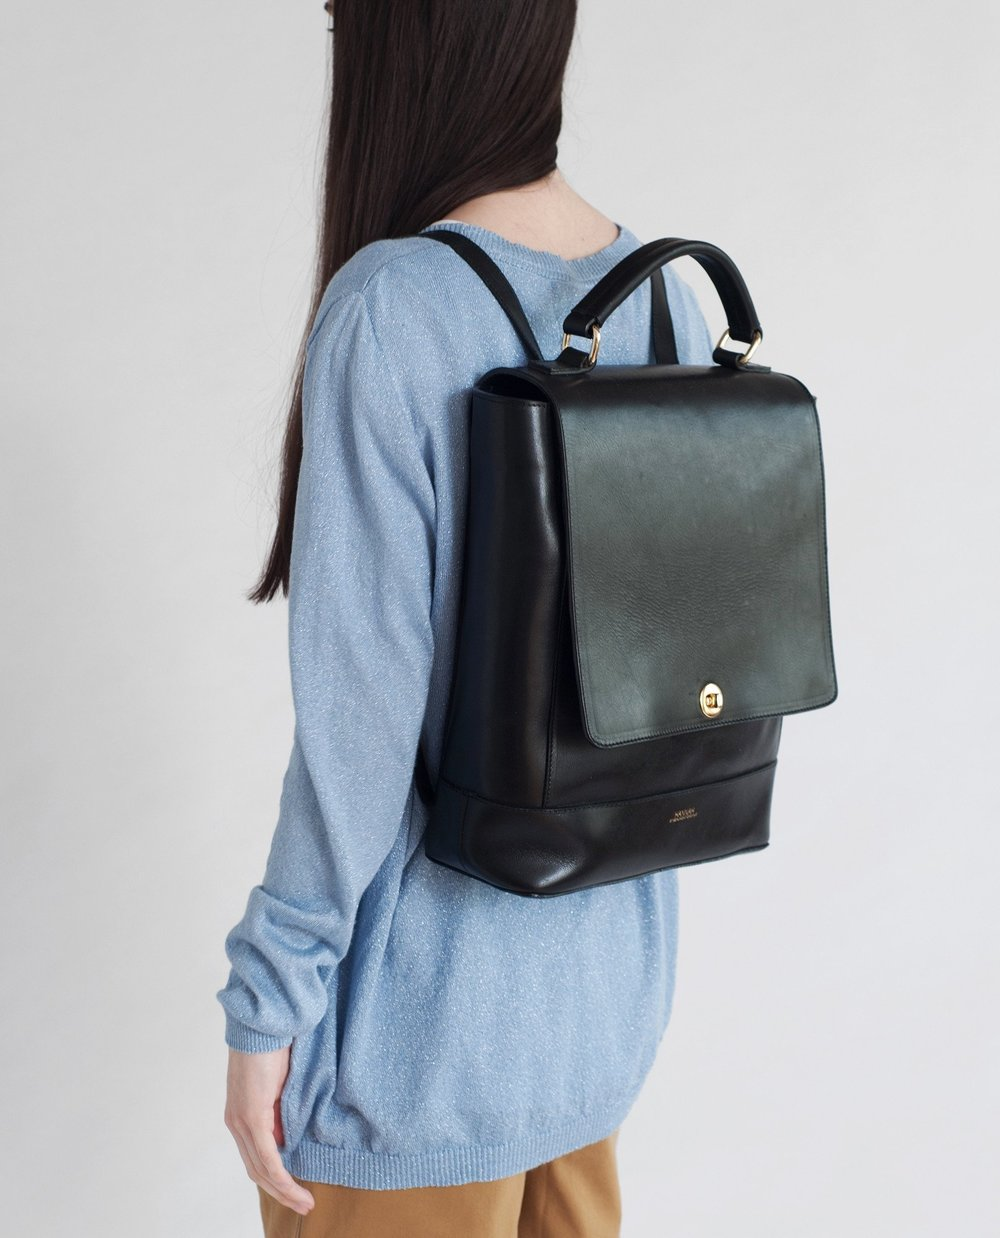 Bruges-Beaumont-Organic-Luxury-Leather-Multiway-Backpack-In-Black-4.jpg